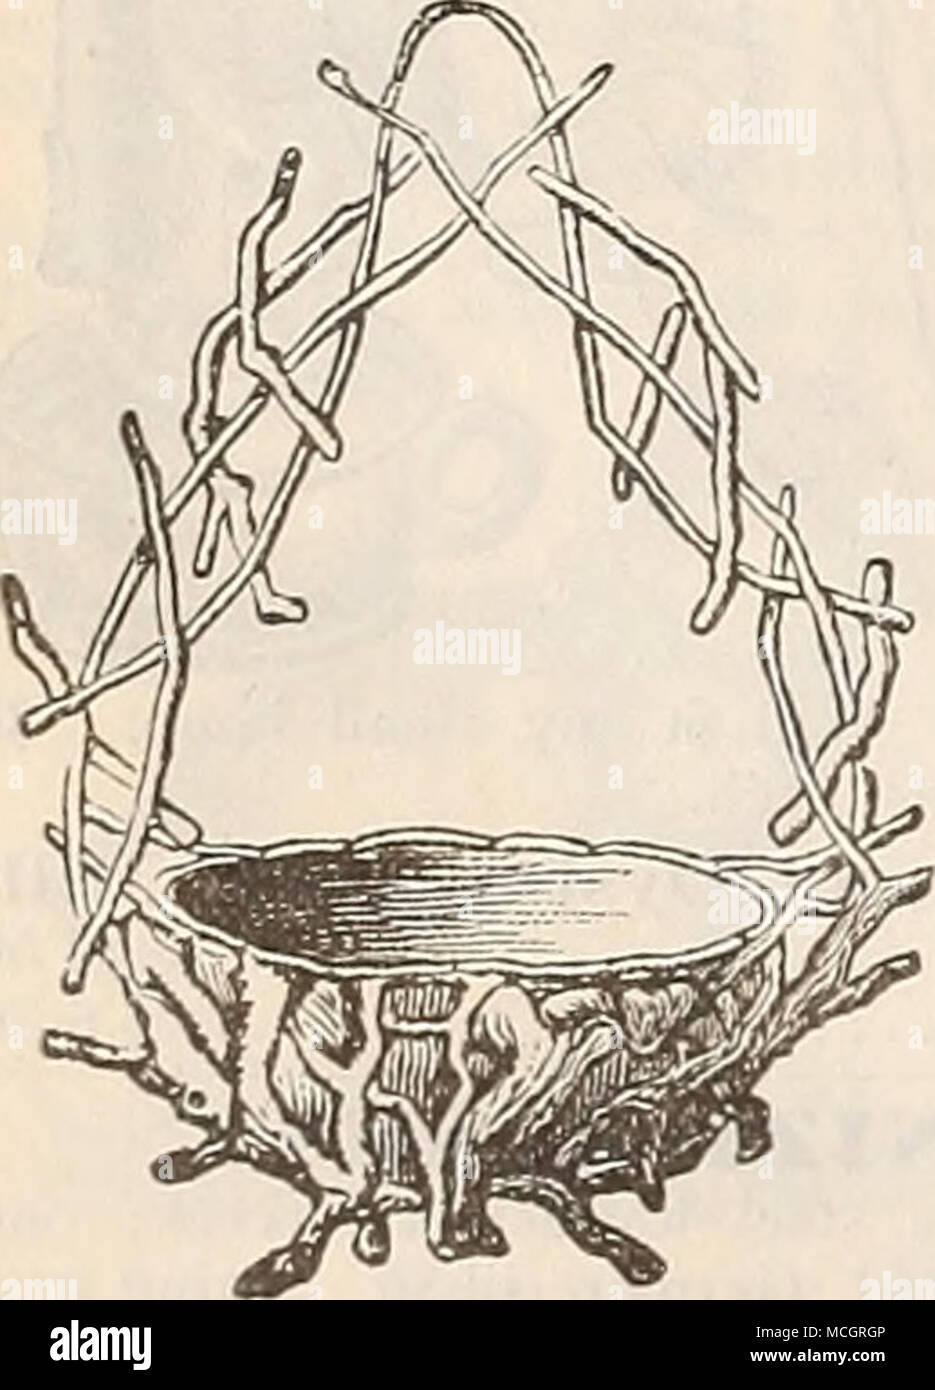 """. Rustic Hanging-Baskets. Round Bowl— No. 2 8 inch $1.00 """"3 9 """" .... 1.50 """"4 10 """" .... 2.00 Oval Bowl— No. 1 10 inch....§1.00 """"2 11 """" .... 1.25 """" 4.... 13 """" .... 2.00 Also, Rustic Settees, Arm Chairs, Lawn Vases and Stump Boxes. - Stock Image"""